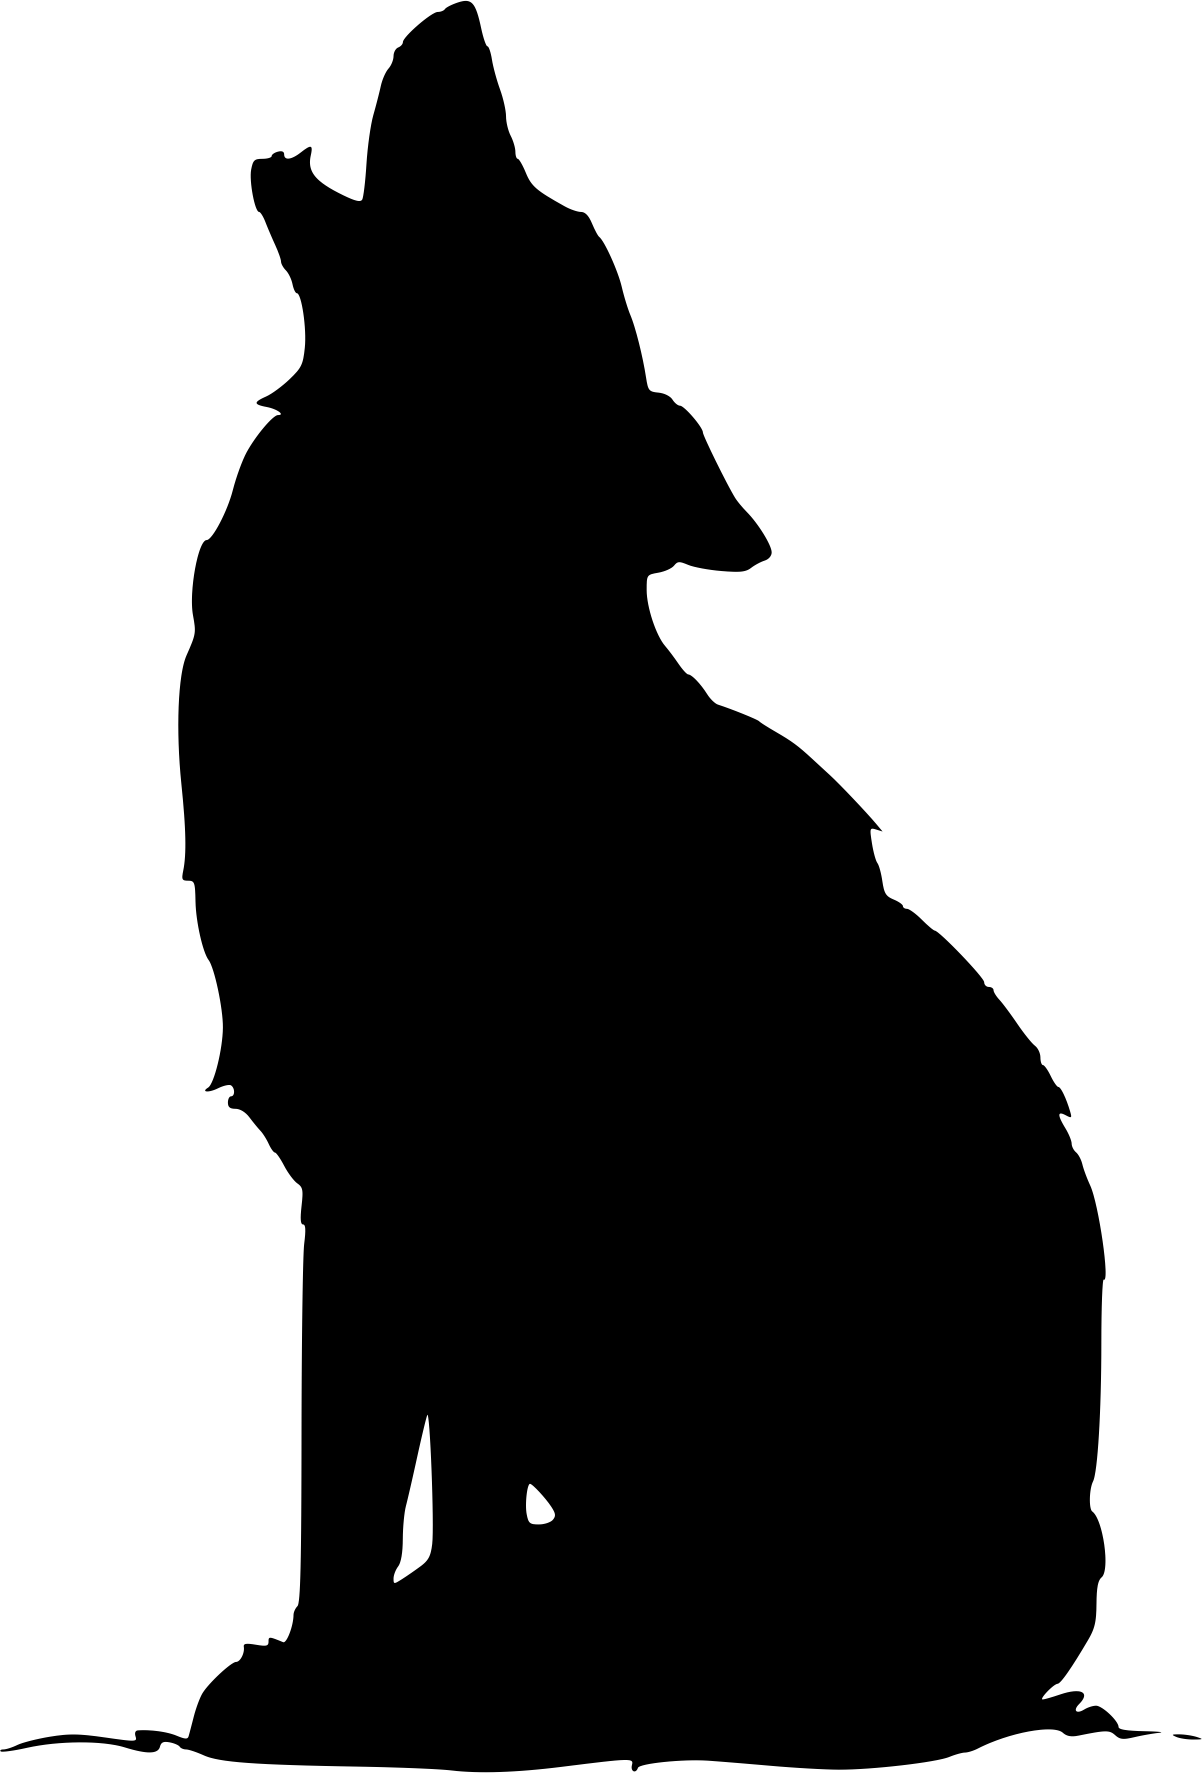 Wolf Silhouette Vinyl Decal Do It Yourself Animal